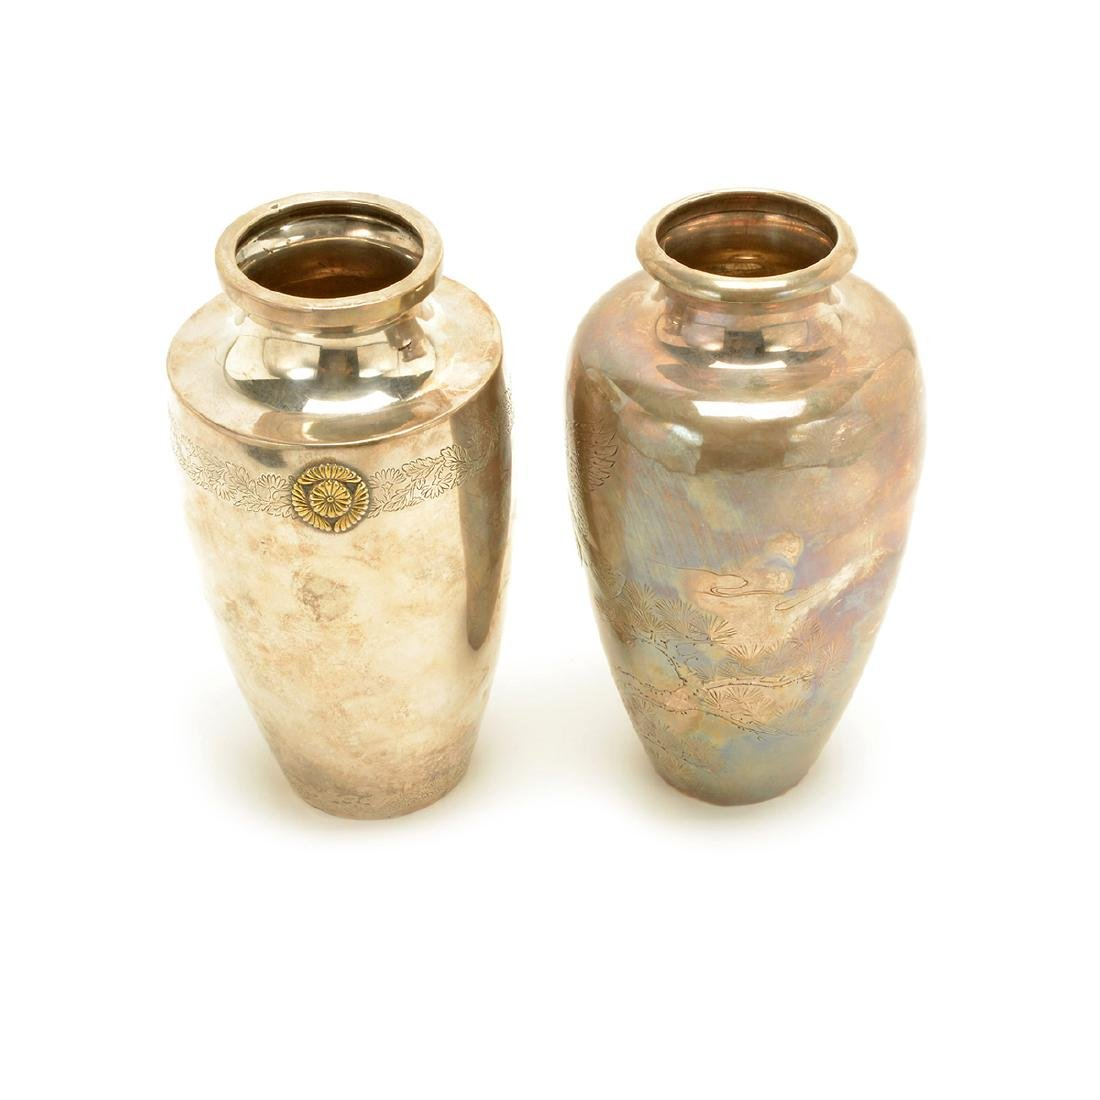 Two Baluster Silver Vases, Meiji Period - 3